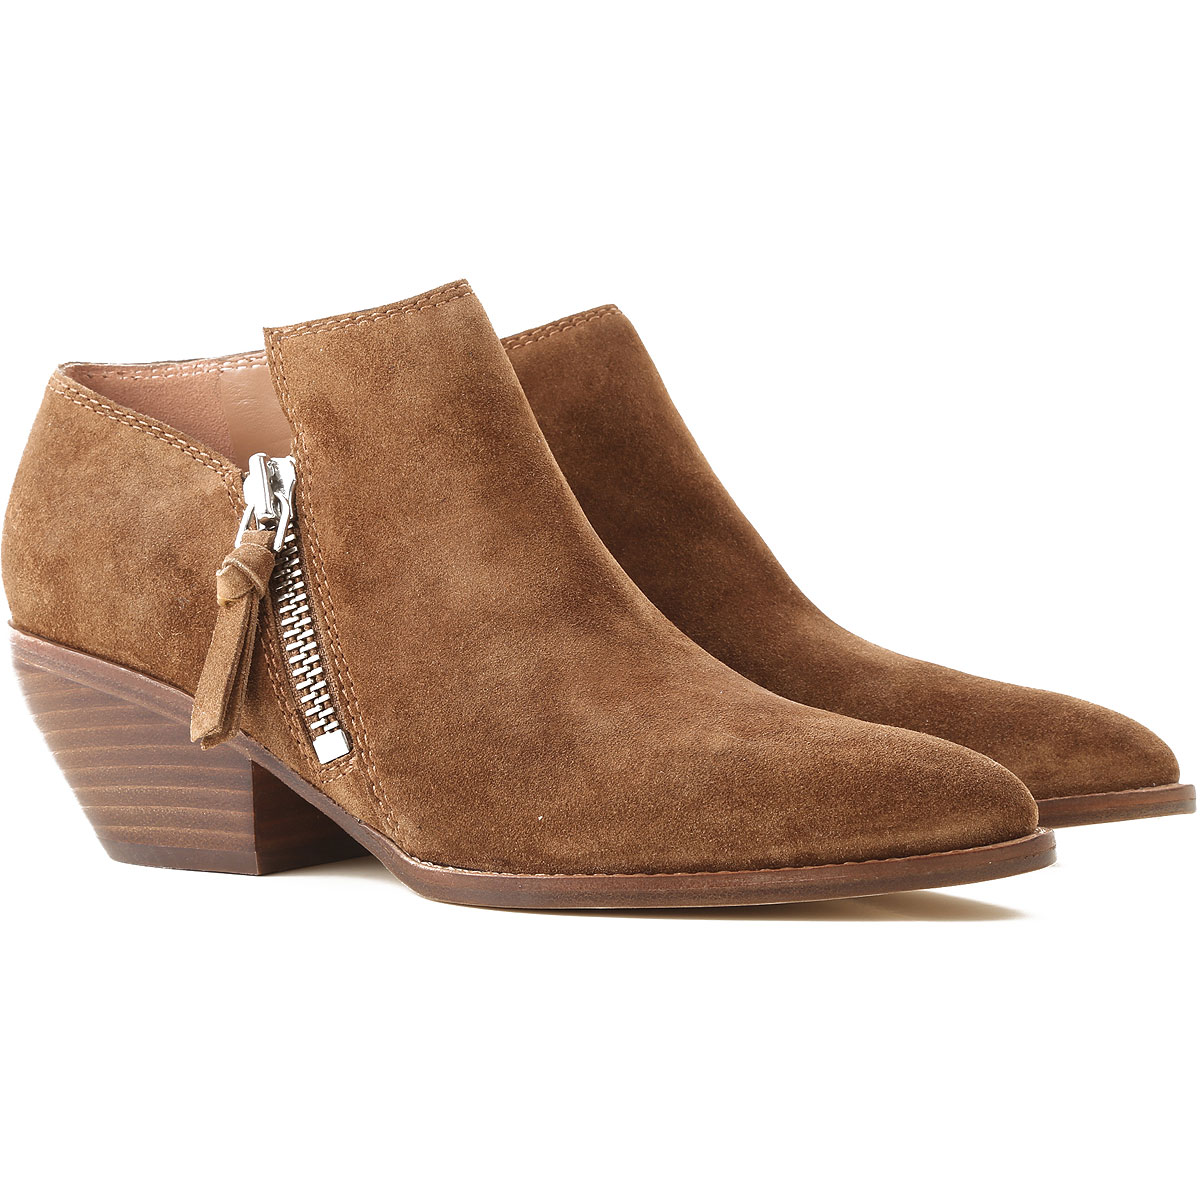 Image of Sigerson Morrison Boots for Women, Booties, Cigar, Suede leather, 2017, 7 8